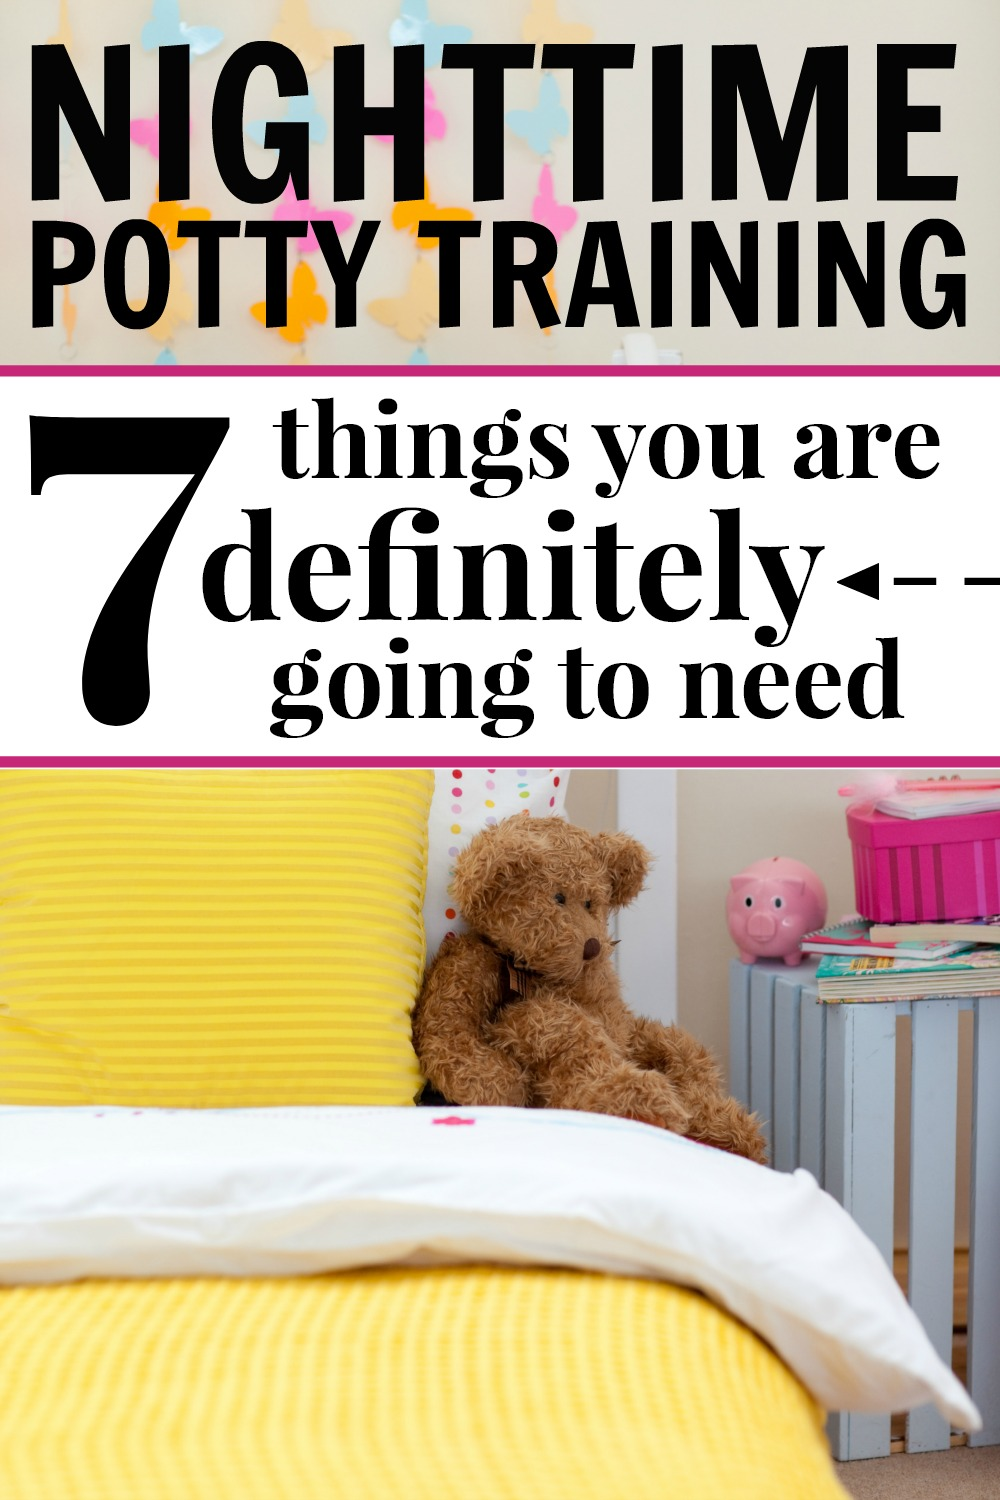 Nighttime Potty Training Supplies You Will Need #pottytraining